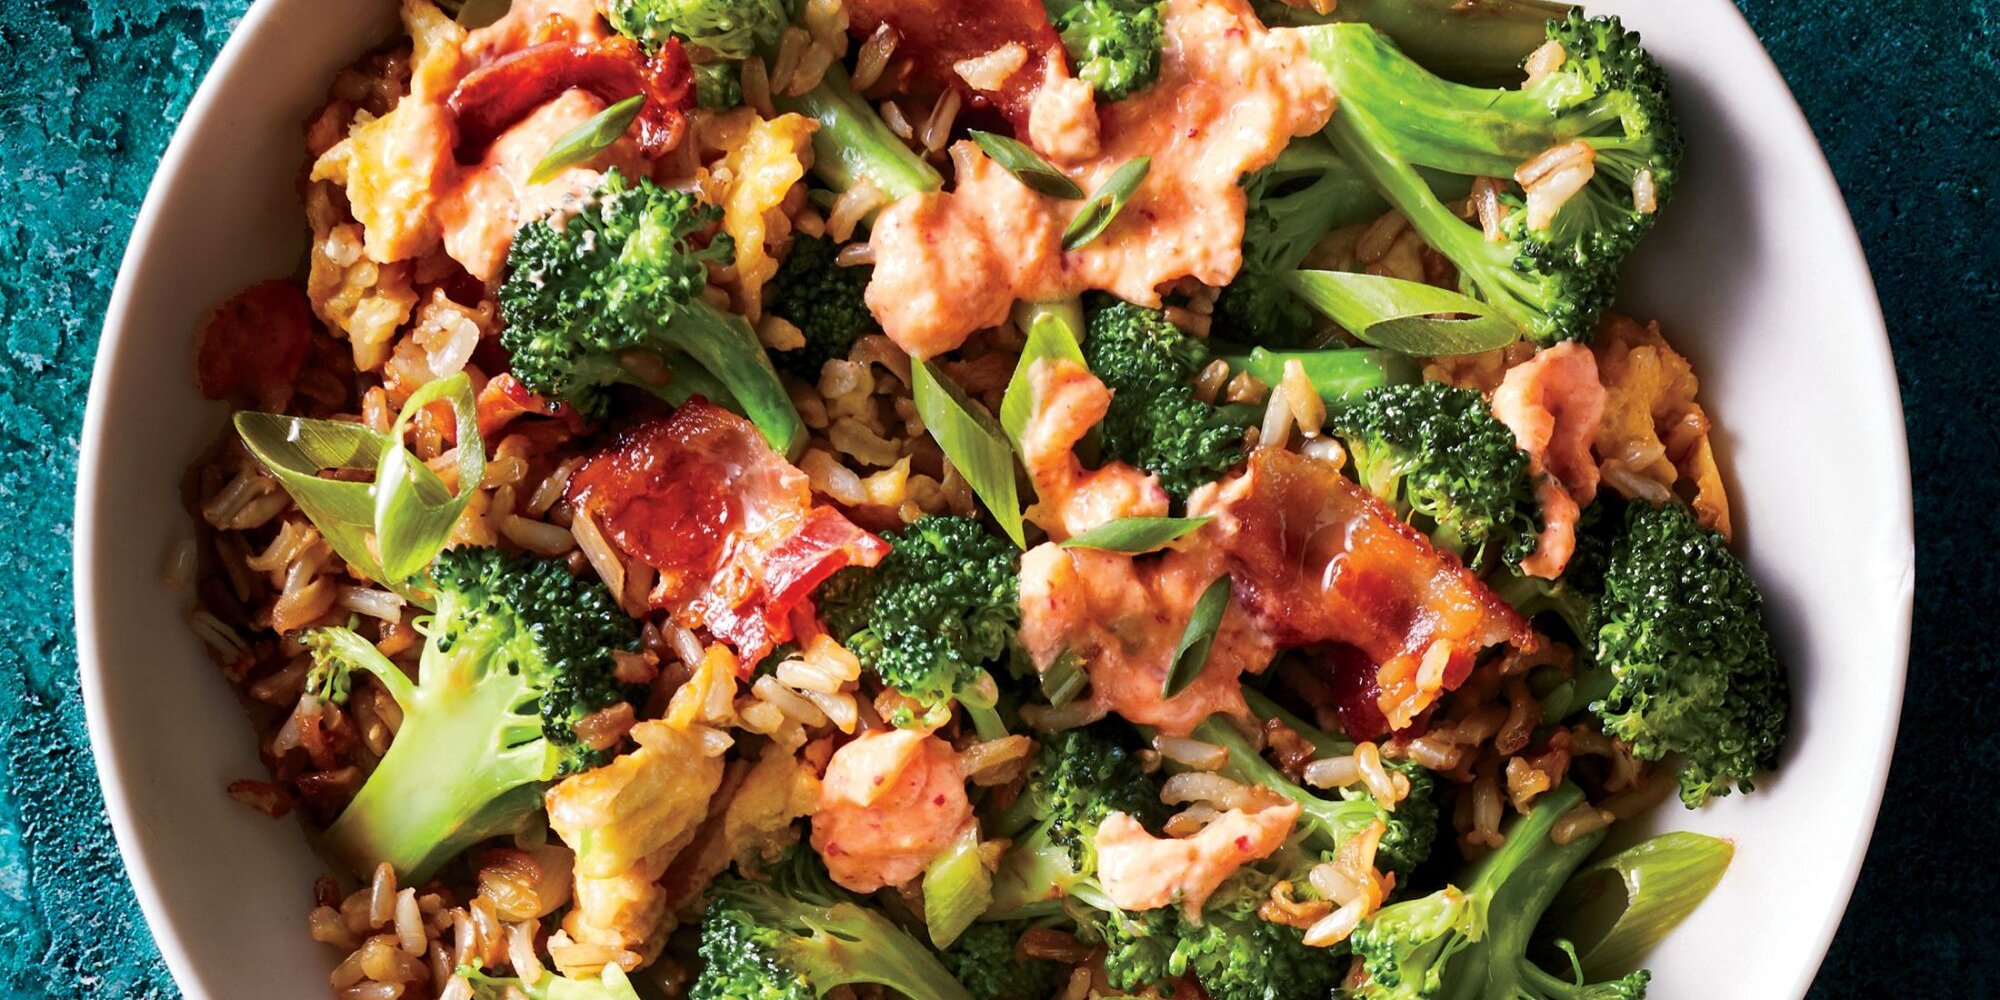 50 Broccoli Recipes That Are Anything But Boring Myrecipes